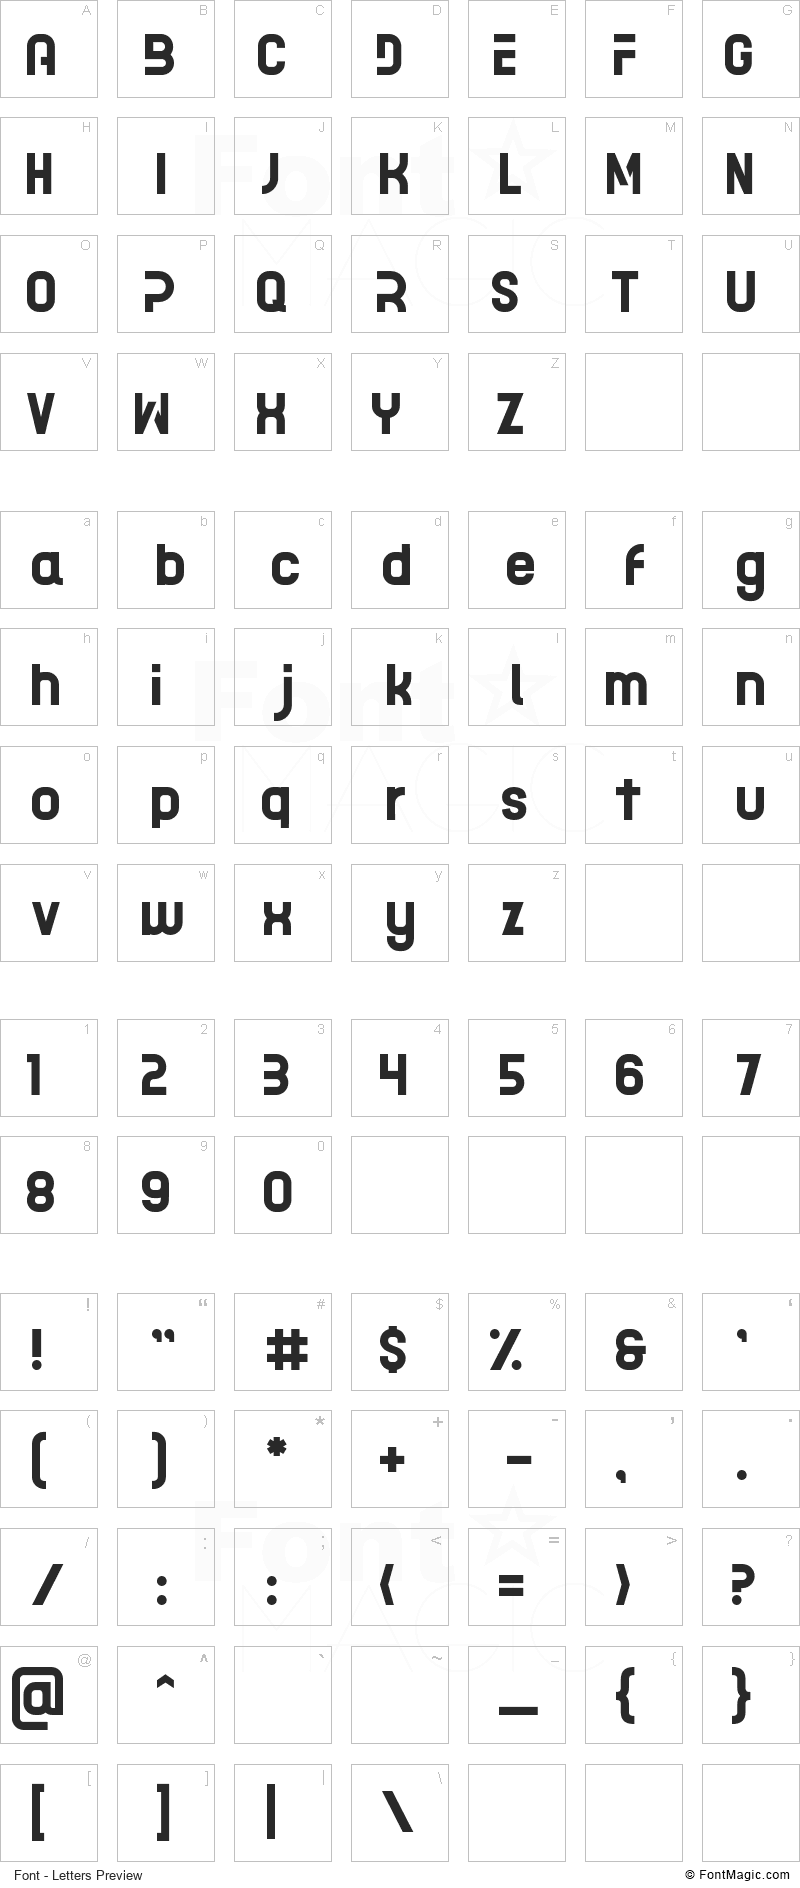 Acetone Font - All Latters Preview Chart